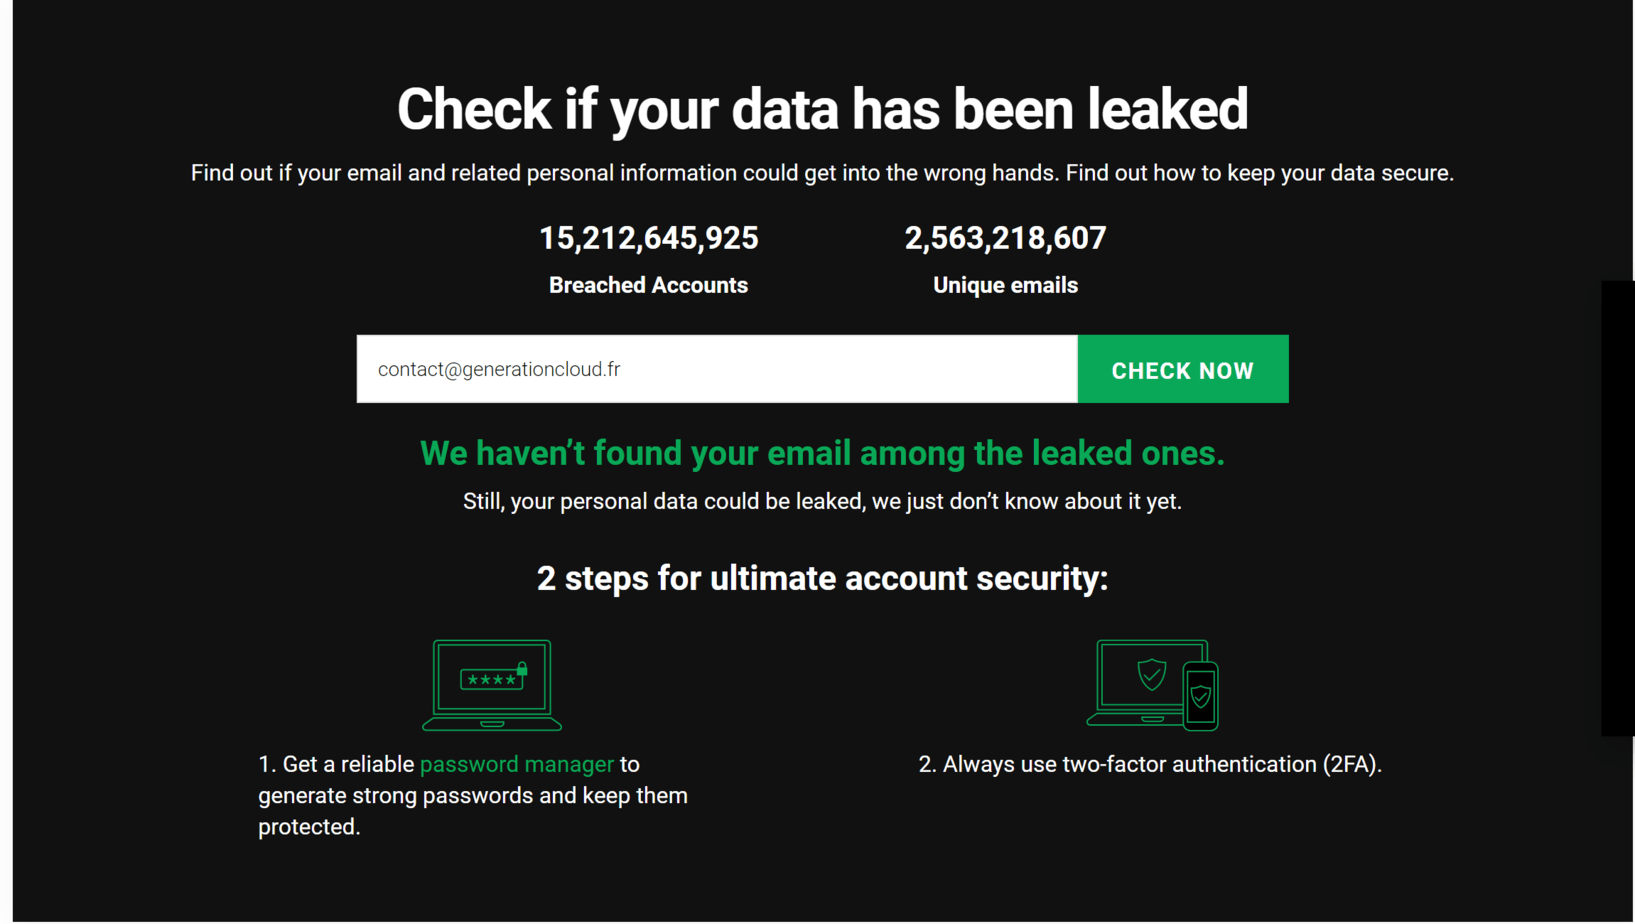 Check if your data has been leaked 2